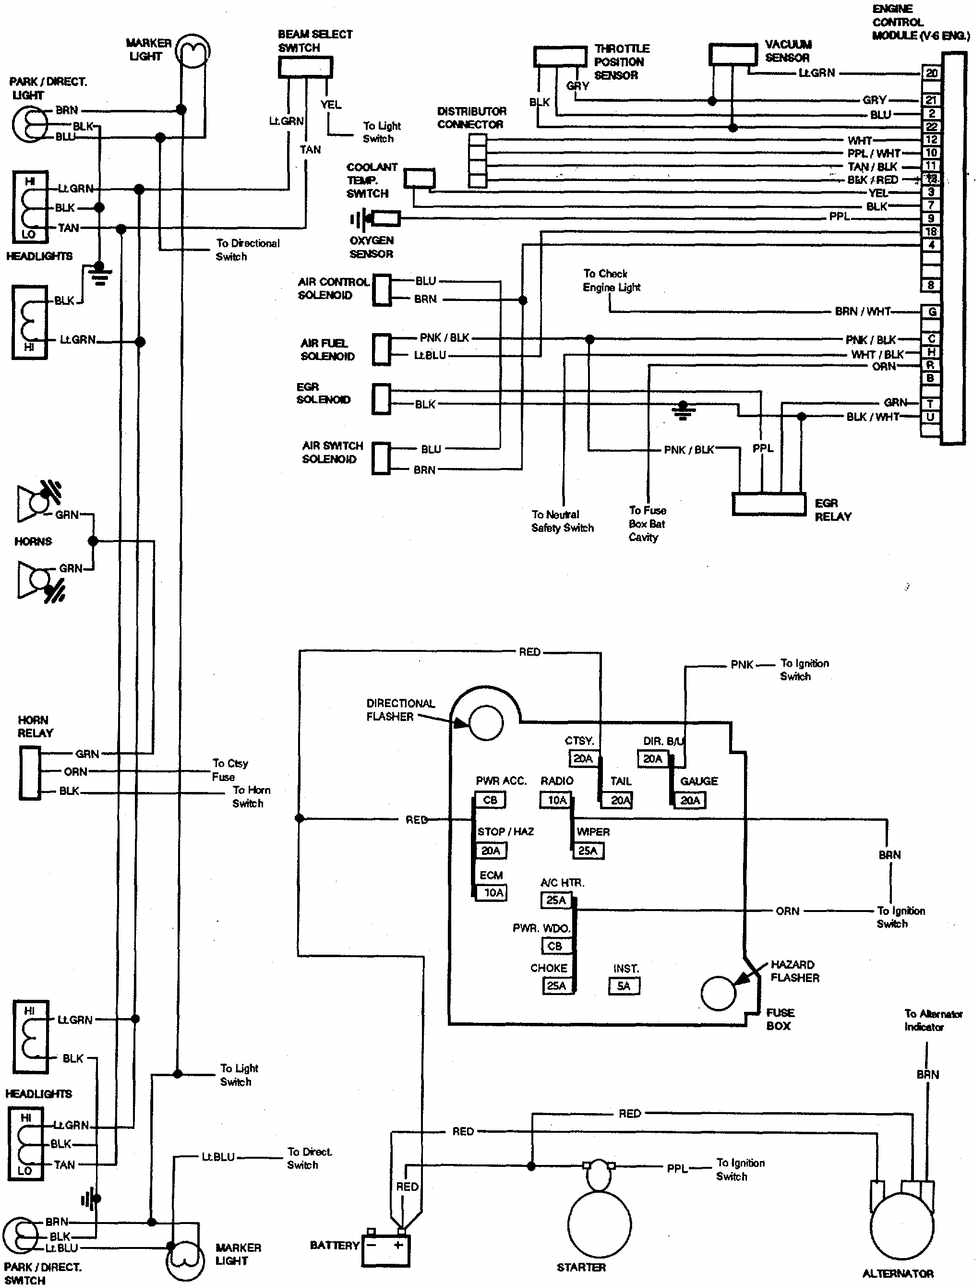 1987 Chevy Motorhome Wiring Schematic Diagram Site Gm Diagrams Automotive Free Picture Library 1995